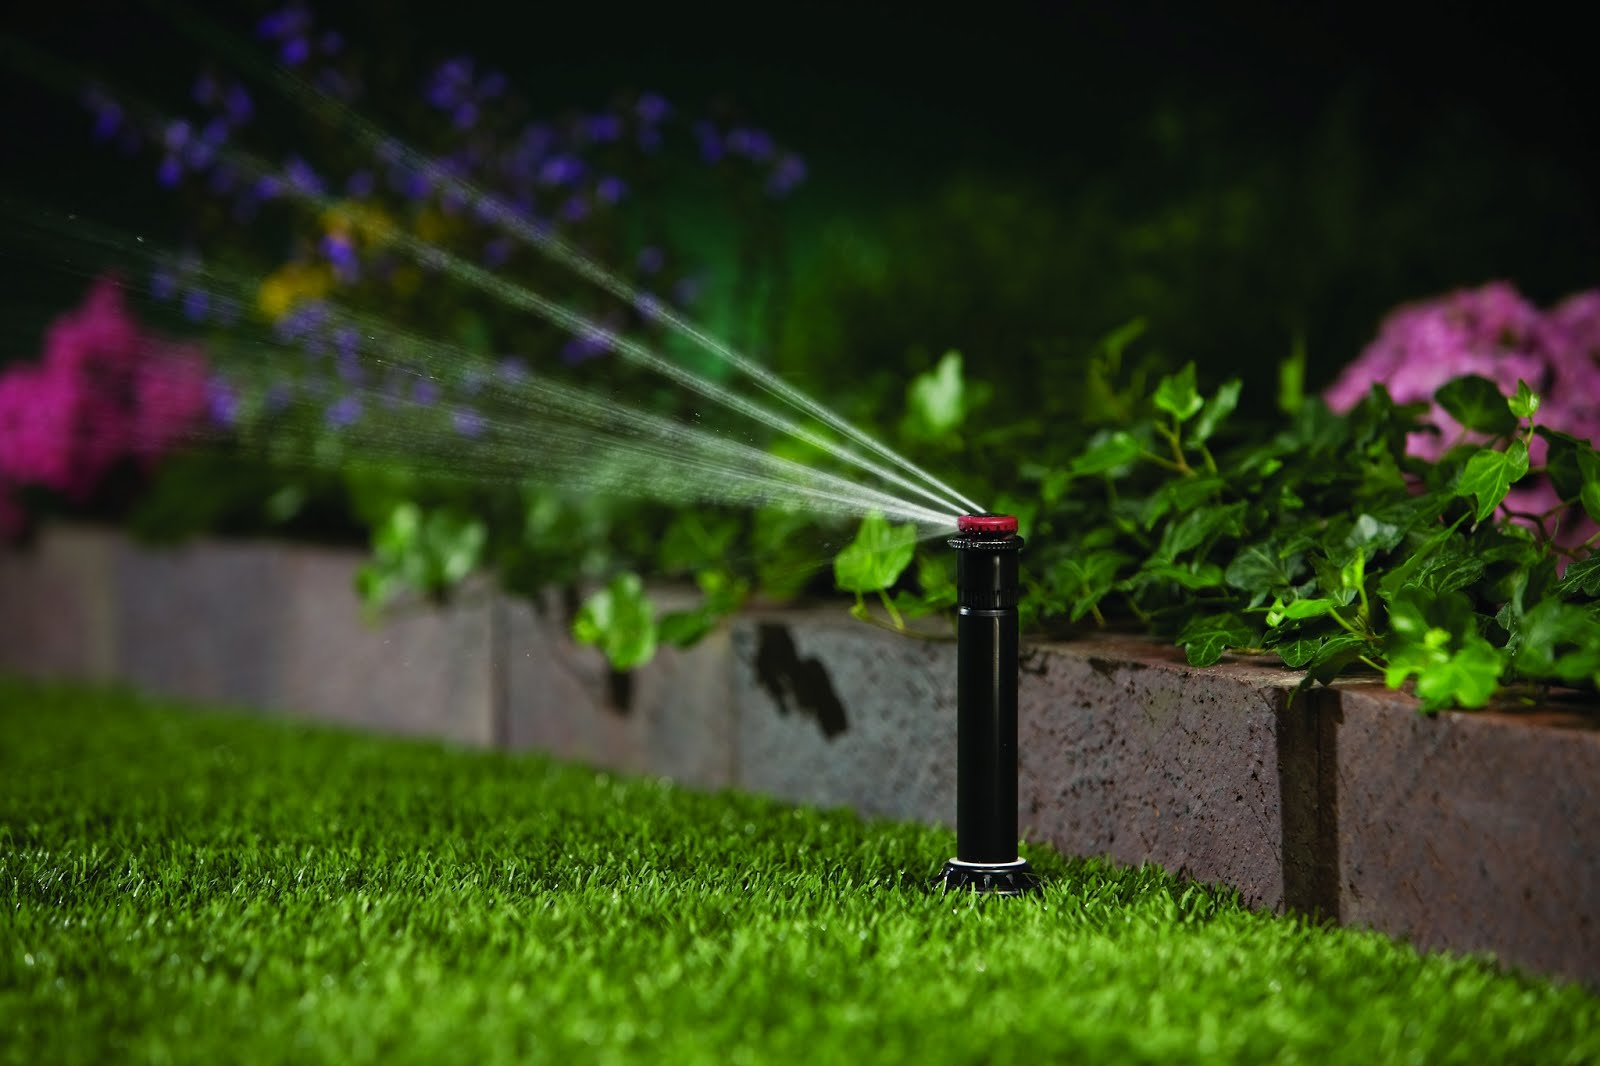 Sprinkler Services-Plano TX Professional Landscapers & Outdoor Living Designs-We offer Landscape Design, Outdoor Patios & Pergolas, Outdoor Living Spaces, Stonescapes, Residential & Commercial Landscaping, Irrigation Installation & Repairs, Drainage Systems, Landscape Lighting, Outdoor Living Spaces, Tree Service, Lawn Service, and more.